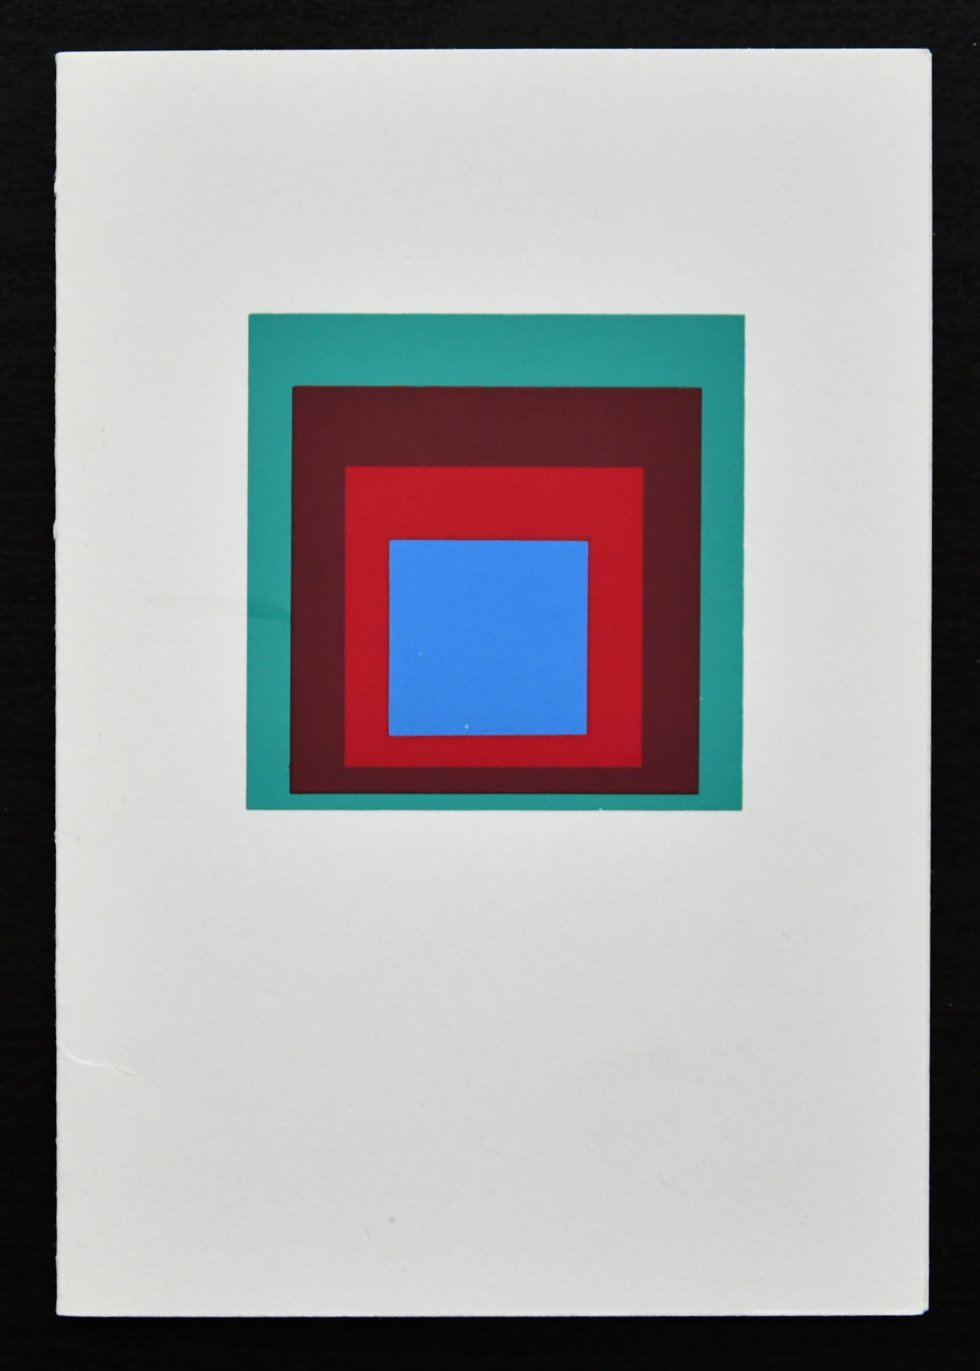 albers landesmuseum a